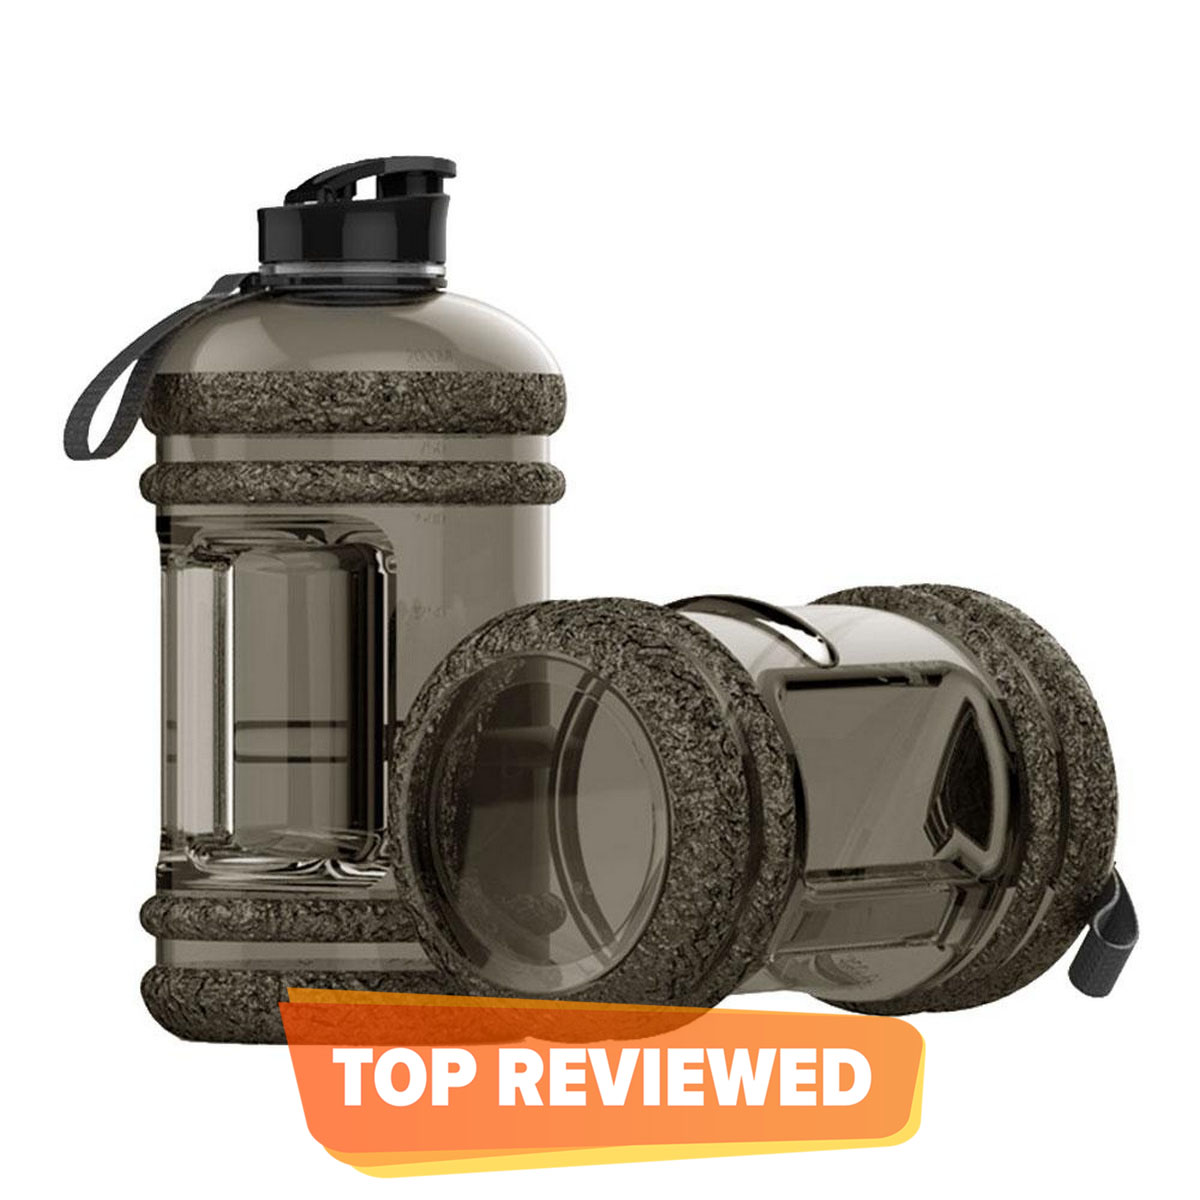 SPORTS WATER BOTTLE LARGE CAPACITY GYM BOTTLE APOLLO ASGB-30 – 2.2 LITTERS